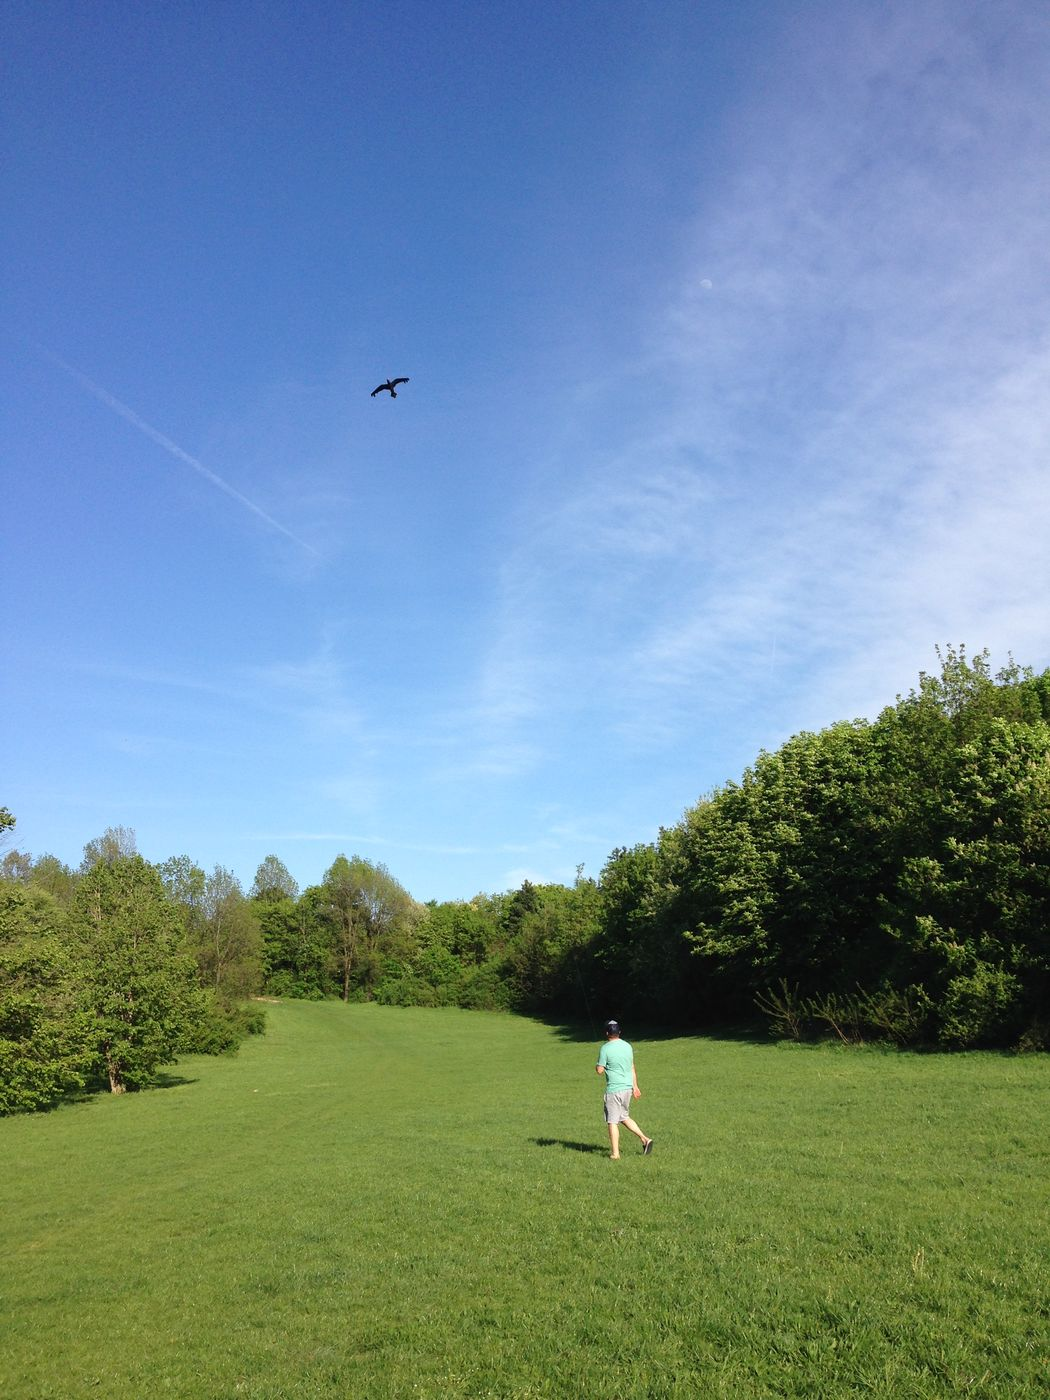 Me Blue Flying Full Length Grass Green Color Kite Kite Flying One Person Zero Wind Kite Live For The Story EyeEmNewHere